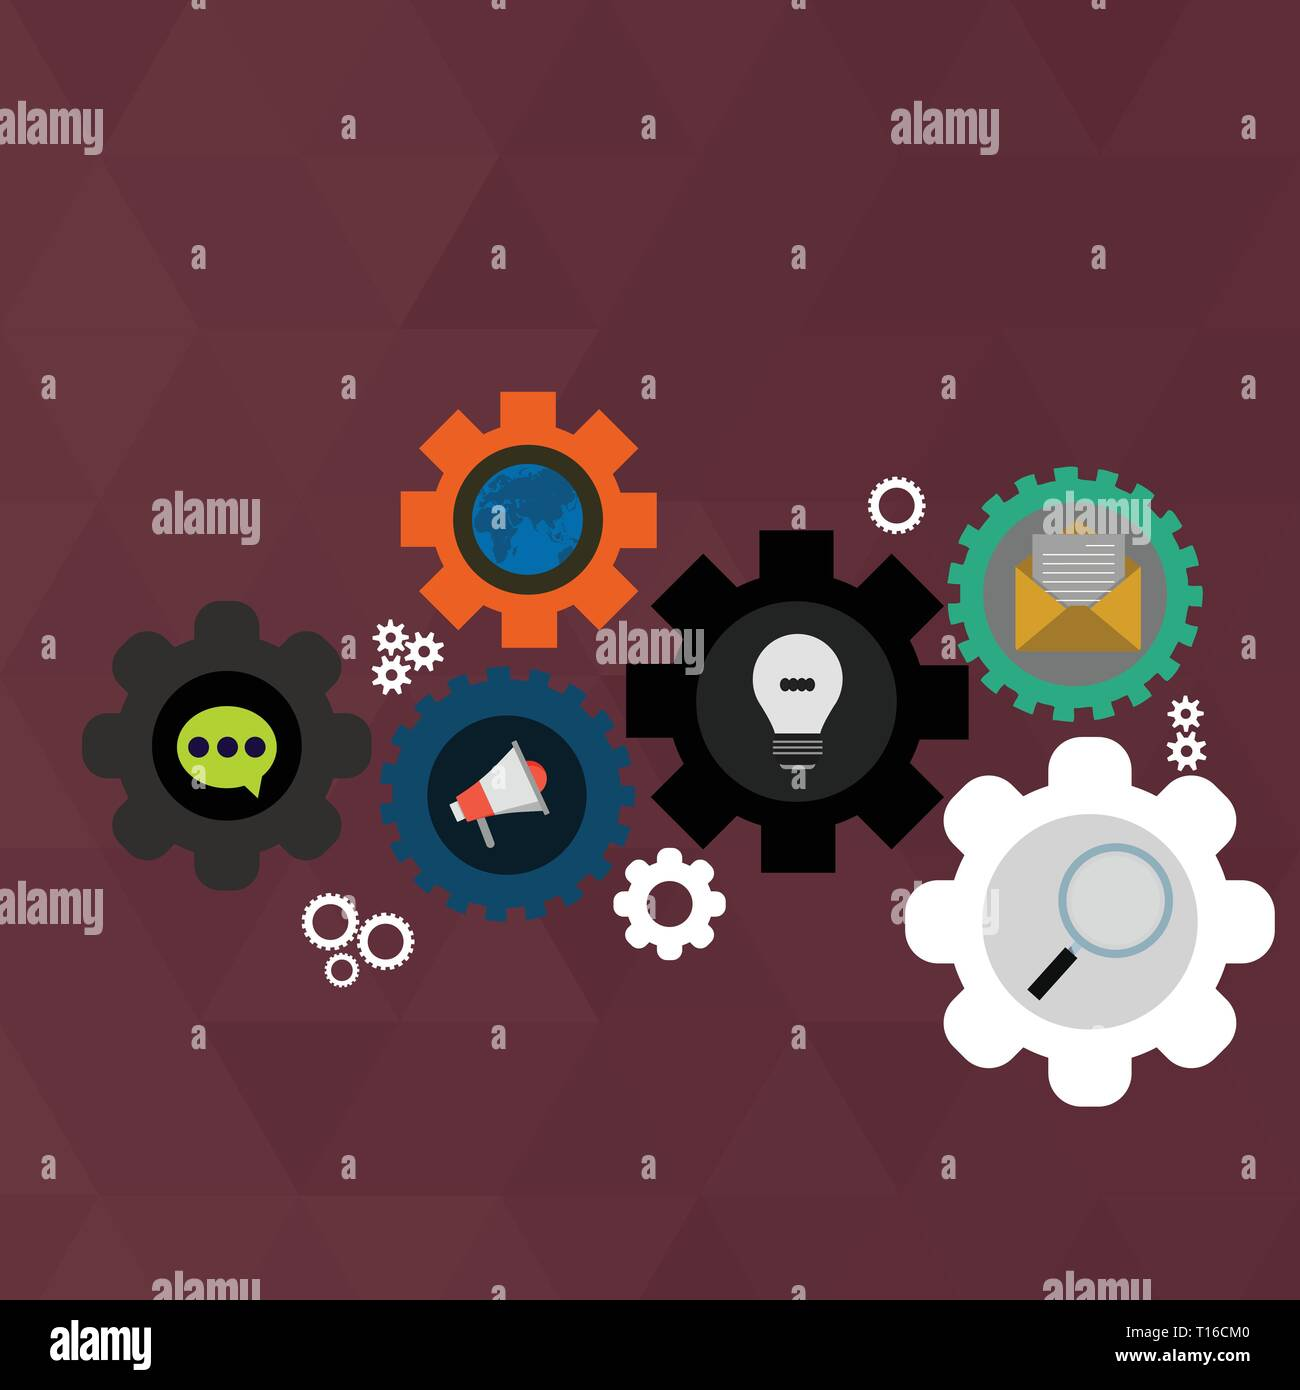 Set Of Global Online Social Networking Icons Inside Colorful